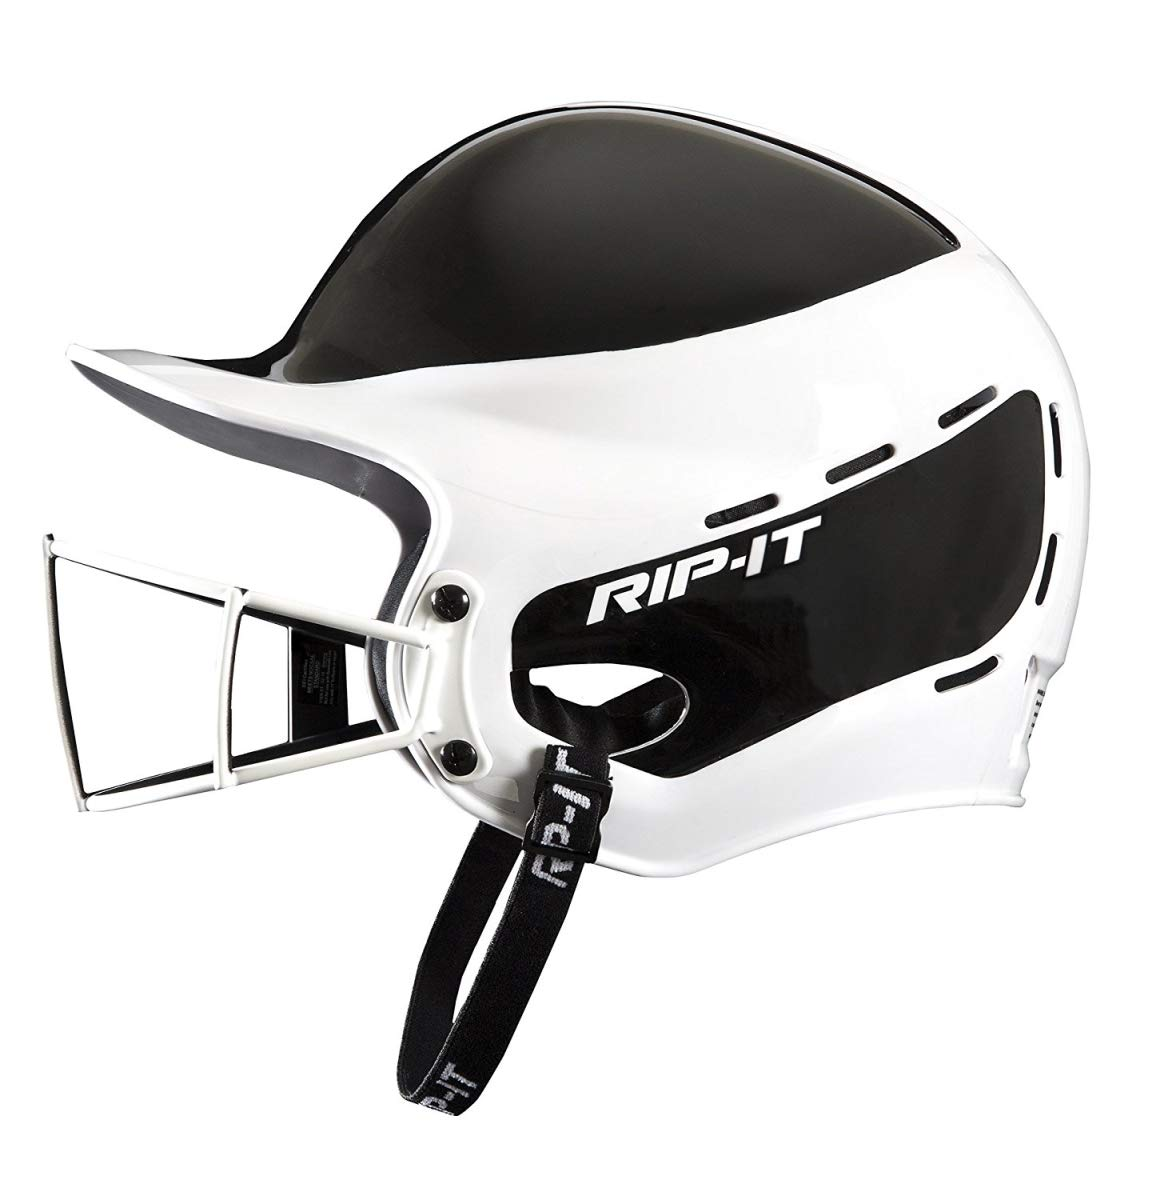 Rip-It Vision Pro Away Softball Batting Helmet (Away Black, Extra Large) by RIP-IT